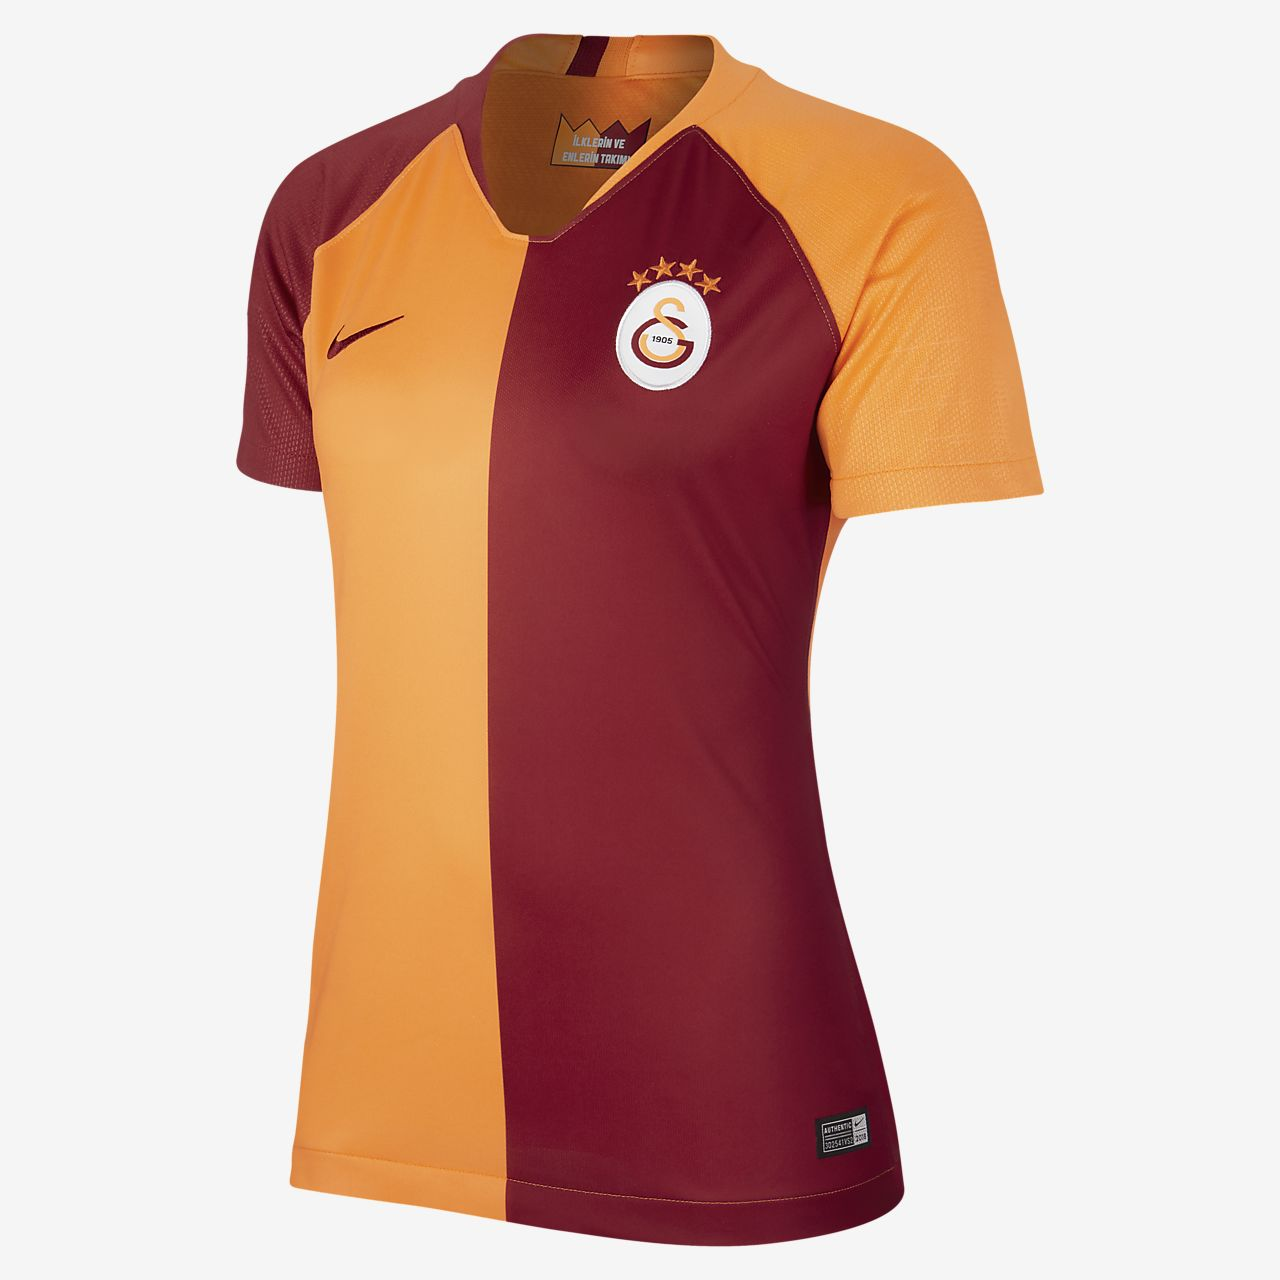 Maillot de football 2018/19 Galatasaray S.K. Stadium Home pour Femme